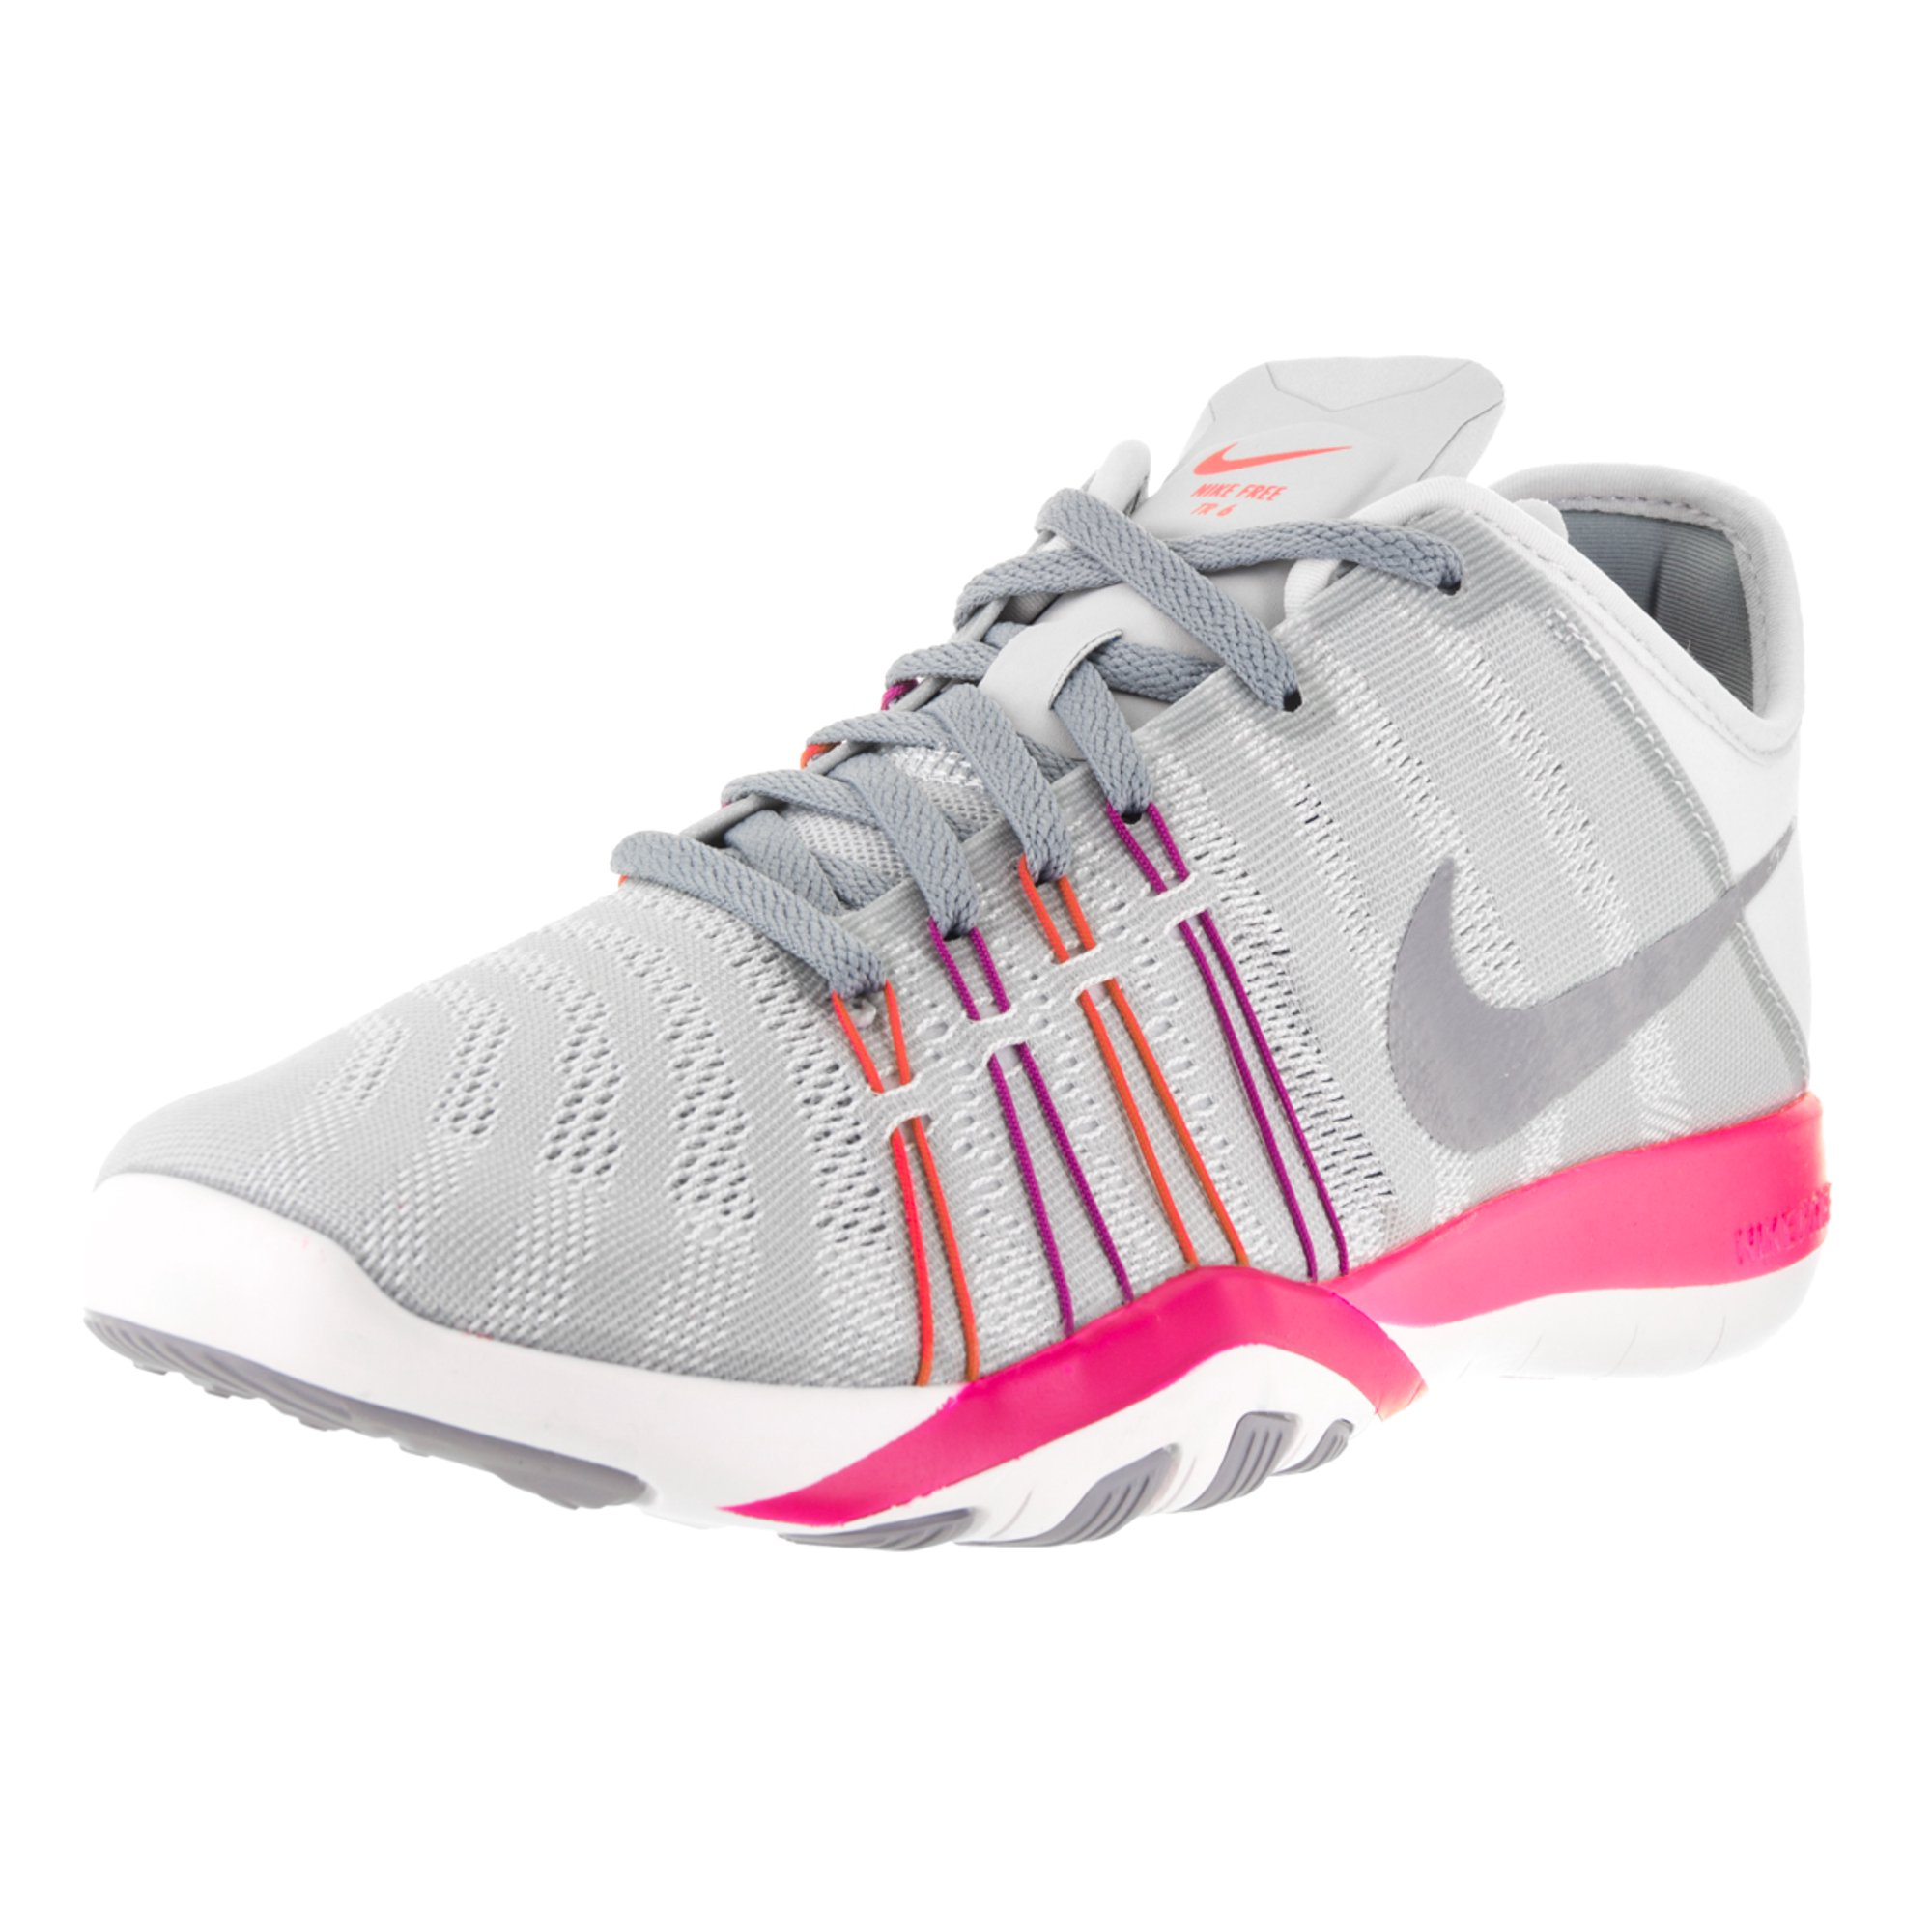 1c62a6dc34f24 Buy Nike Women s Free Tr 6 Training Shoe